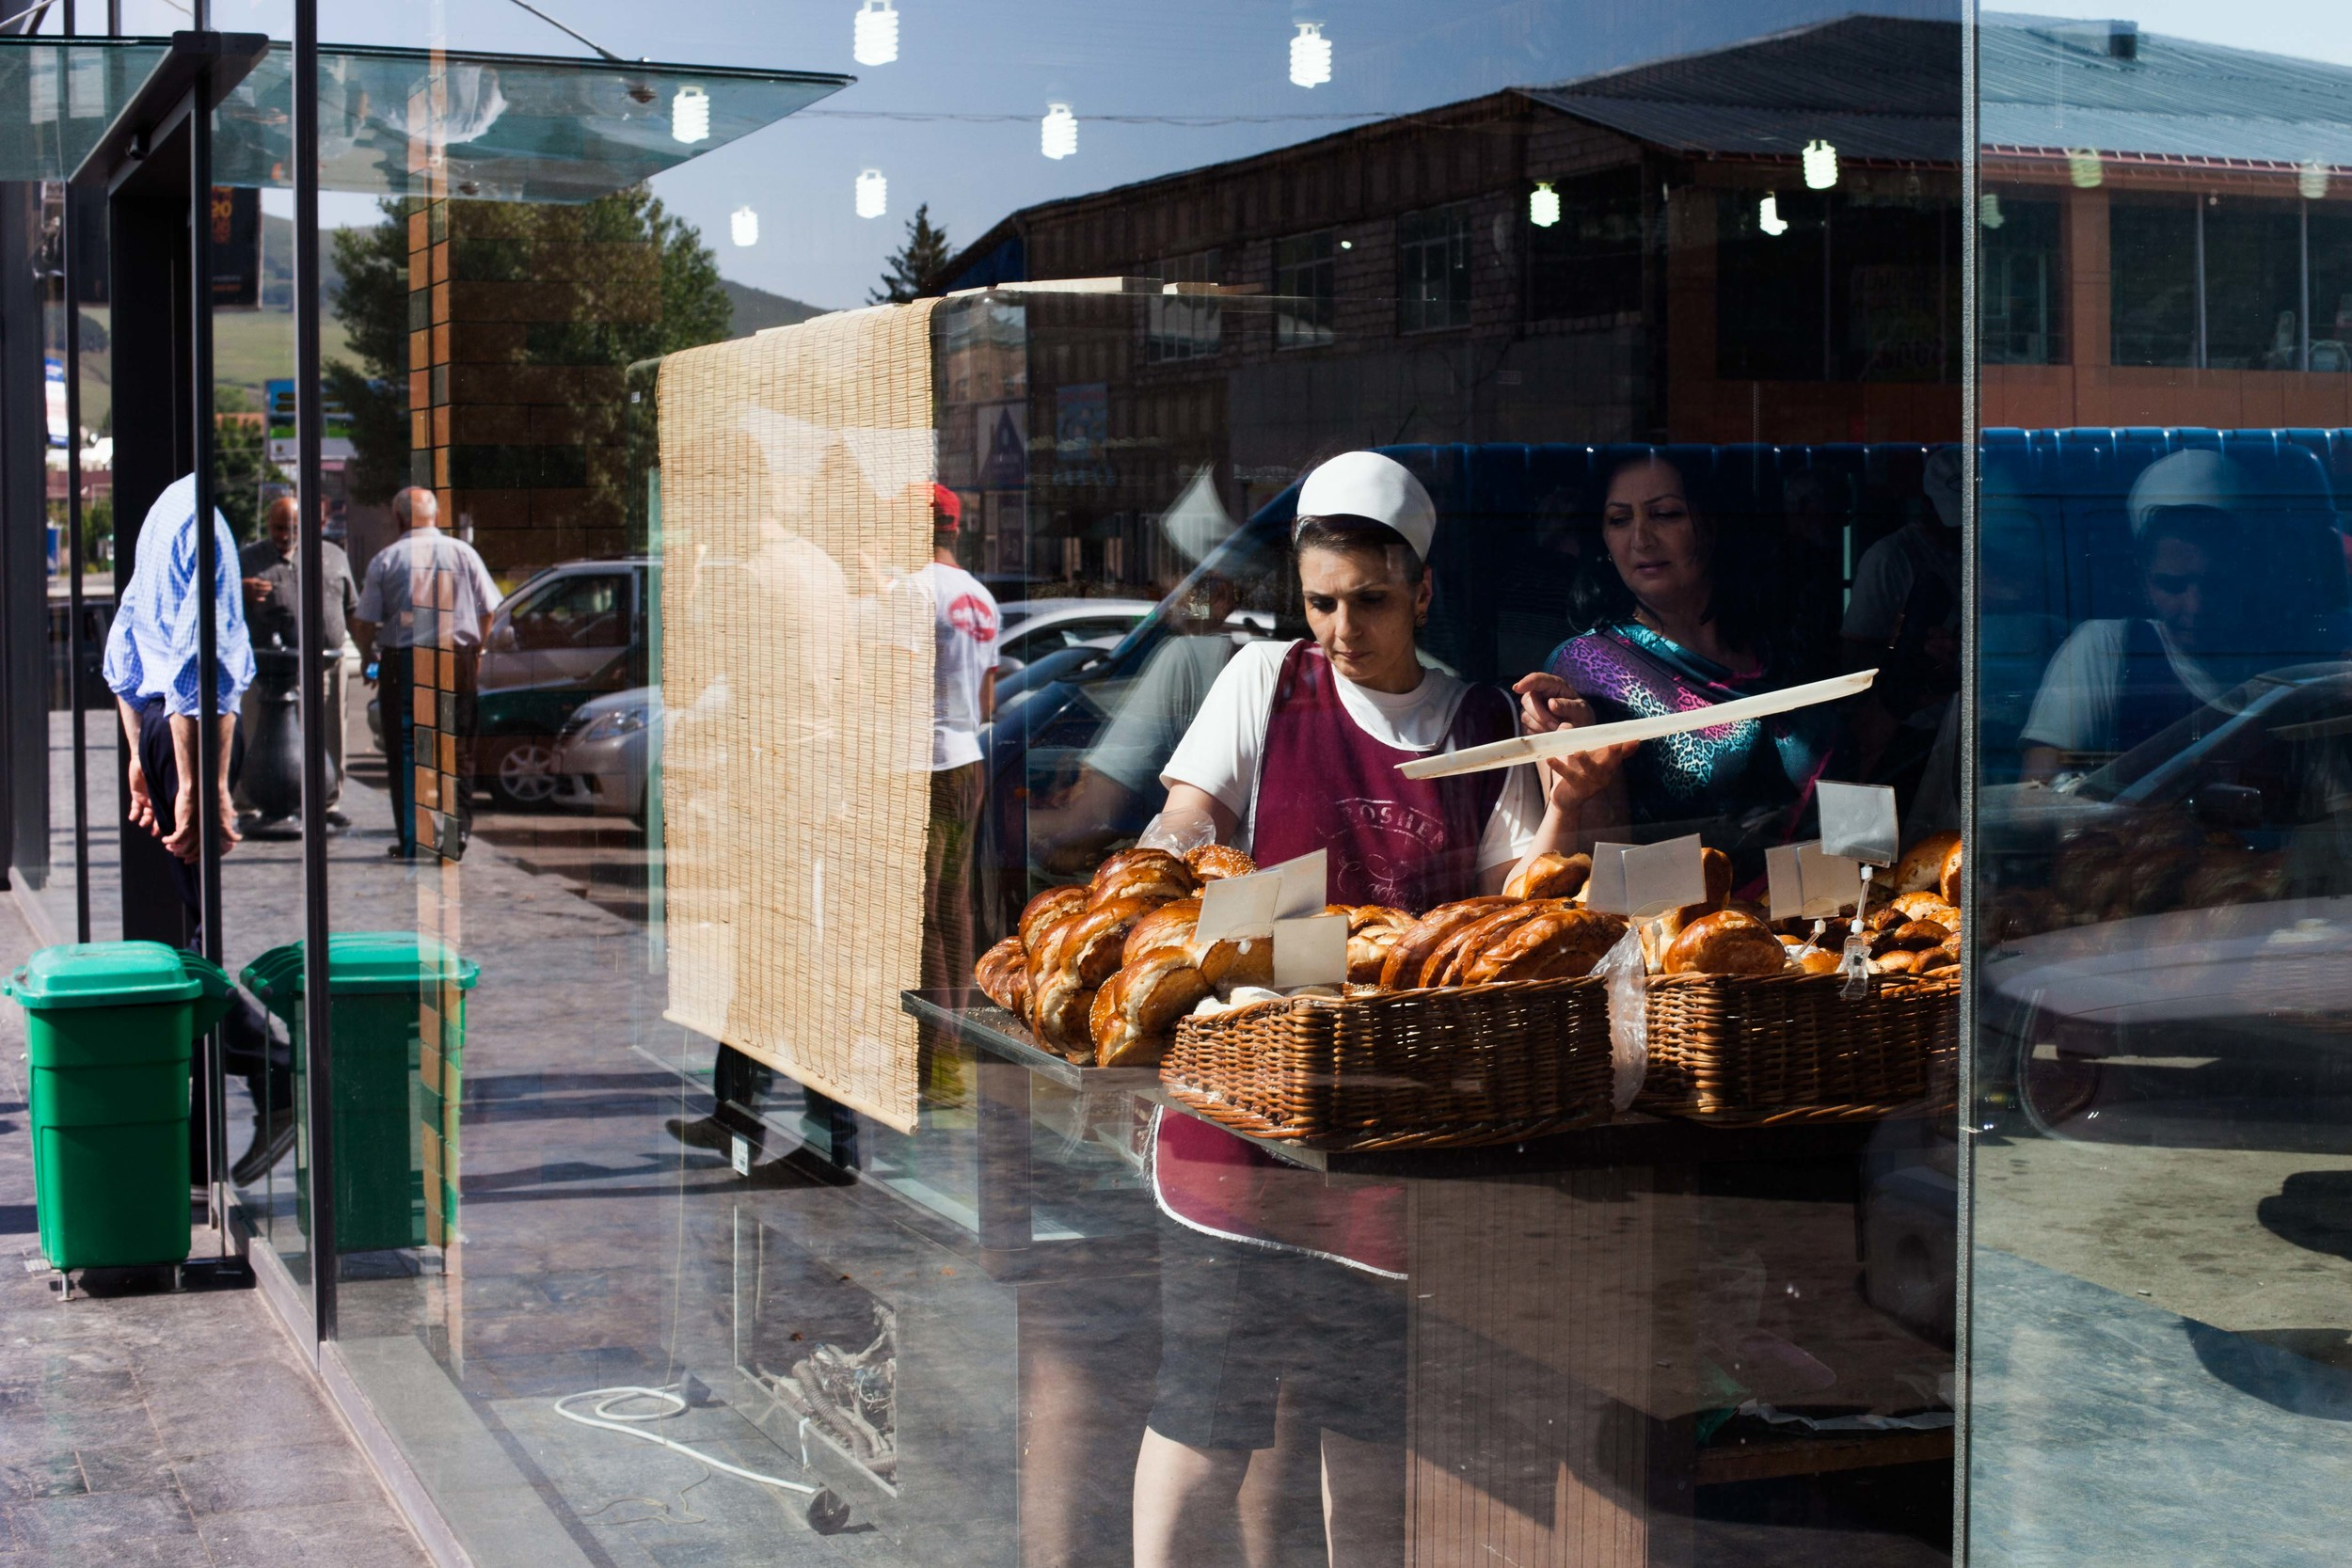 On a daily basis, bakeries provide people with their fresh bread, a staple at every meal.